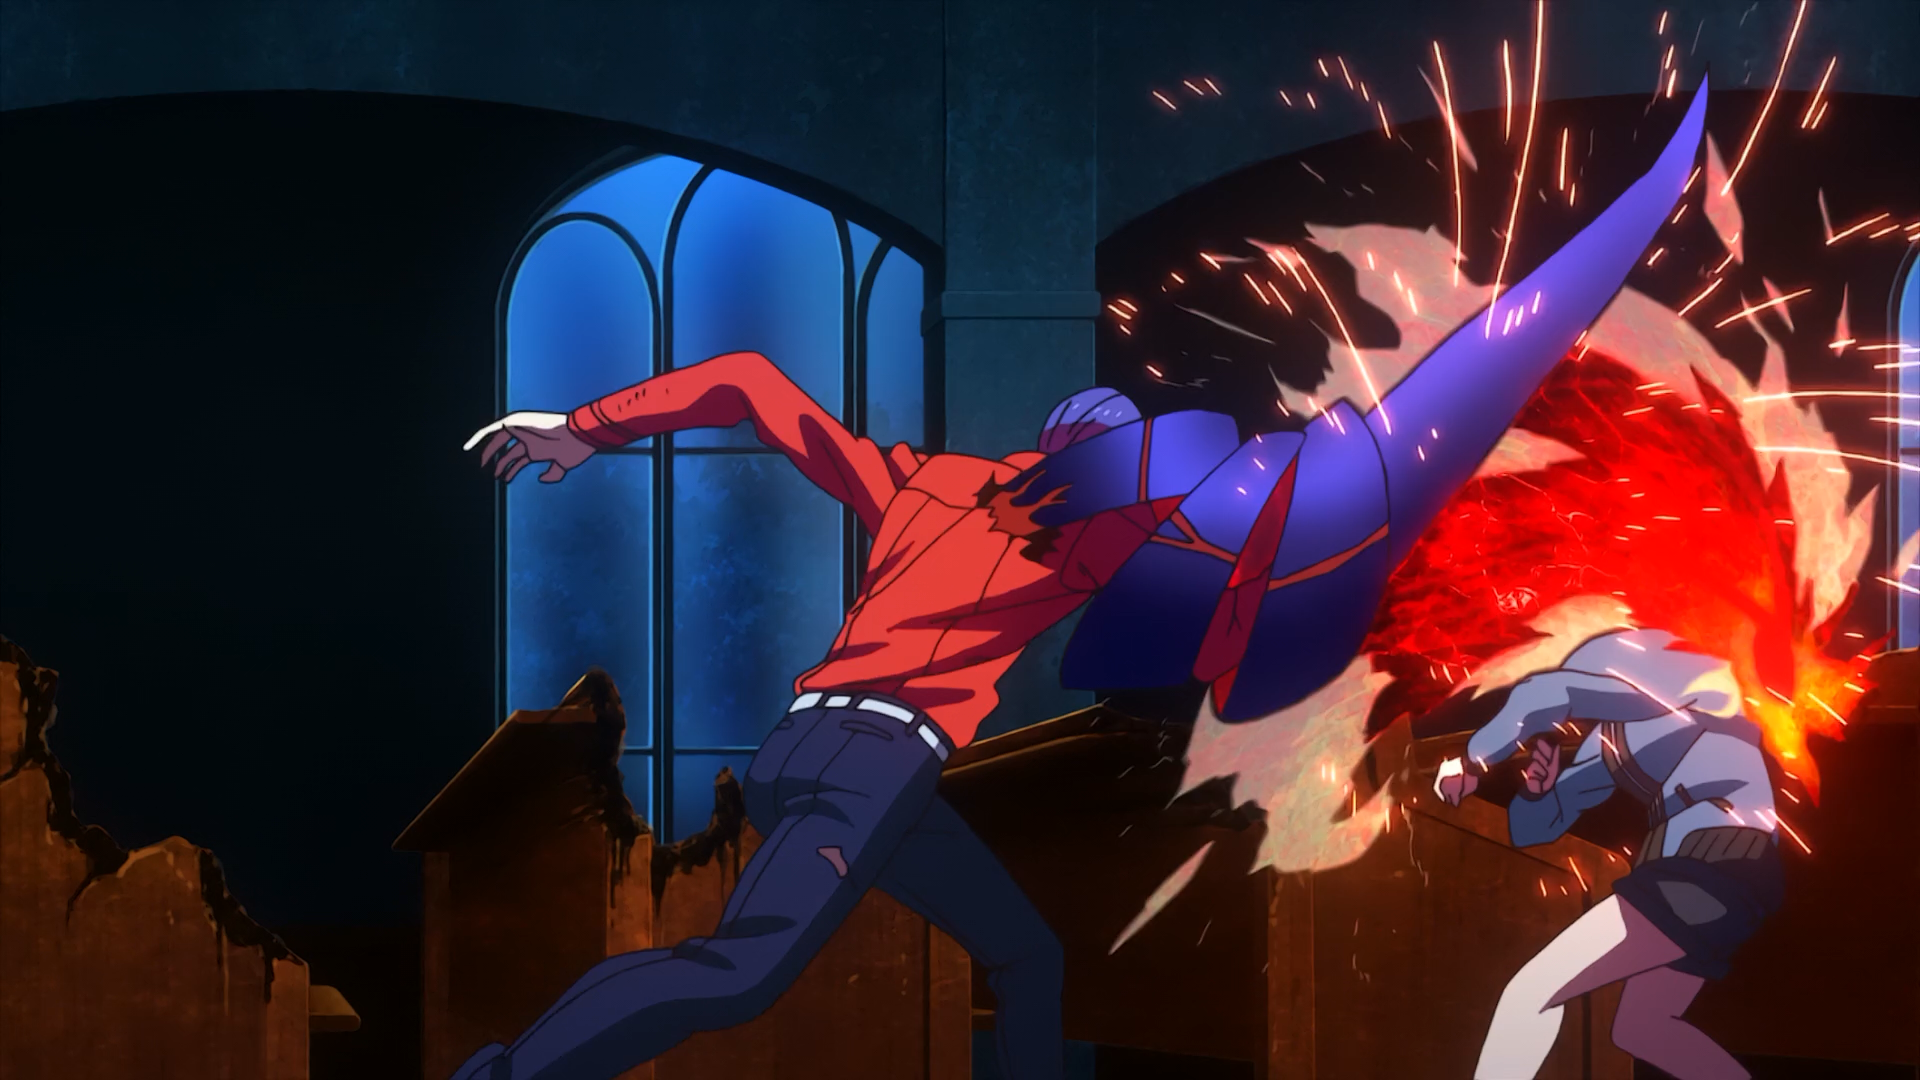 Tokyo Ghoul Touka Kirishima Wings Blood Crying: Image - Touka Defending From Shuu's Attack.png